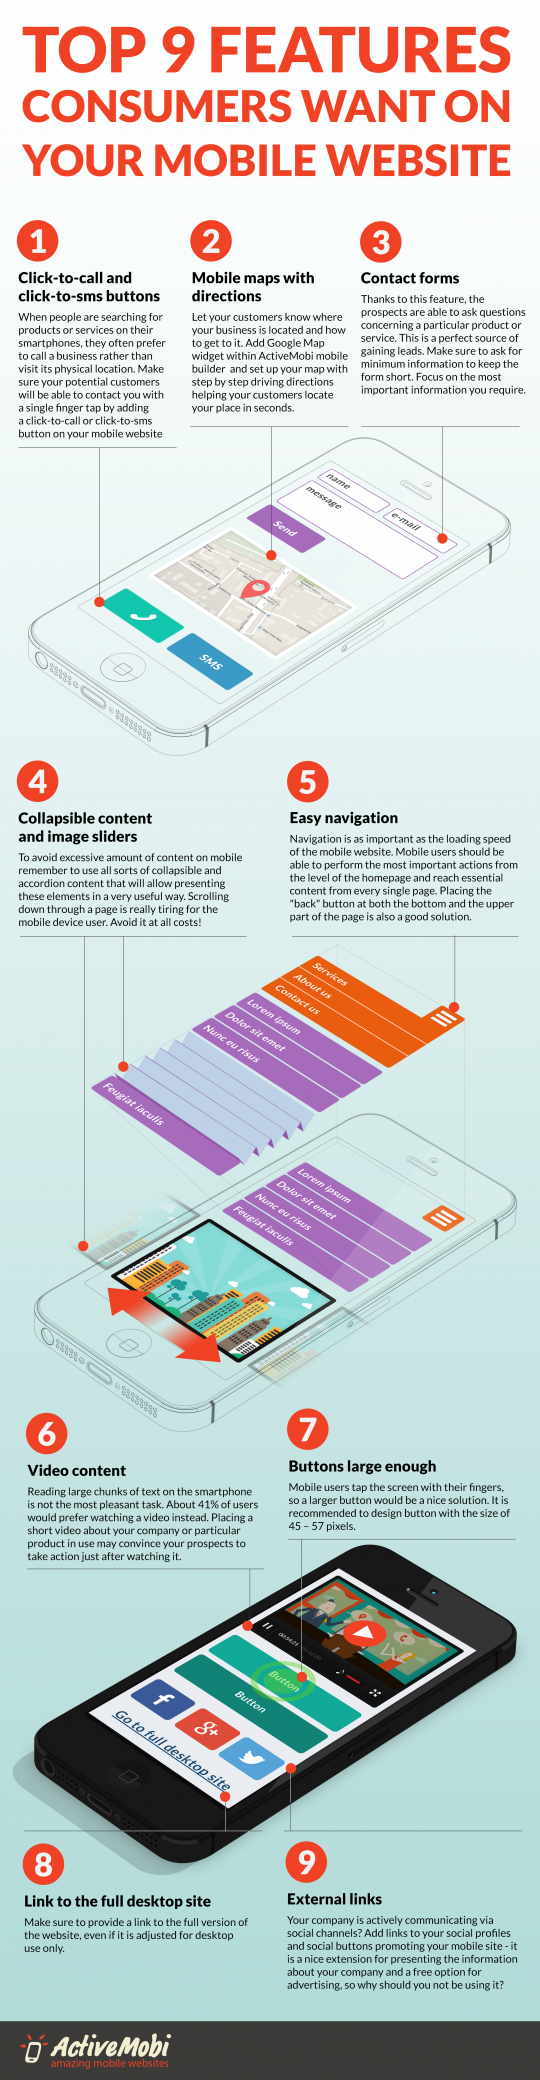 Top 9 Features Consumers Want on Your Mobile Website